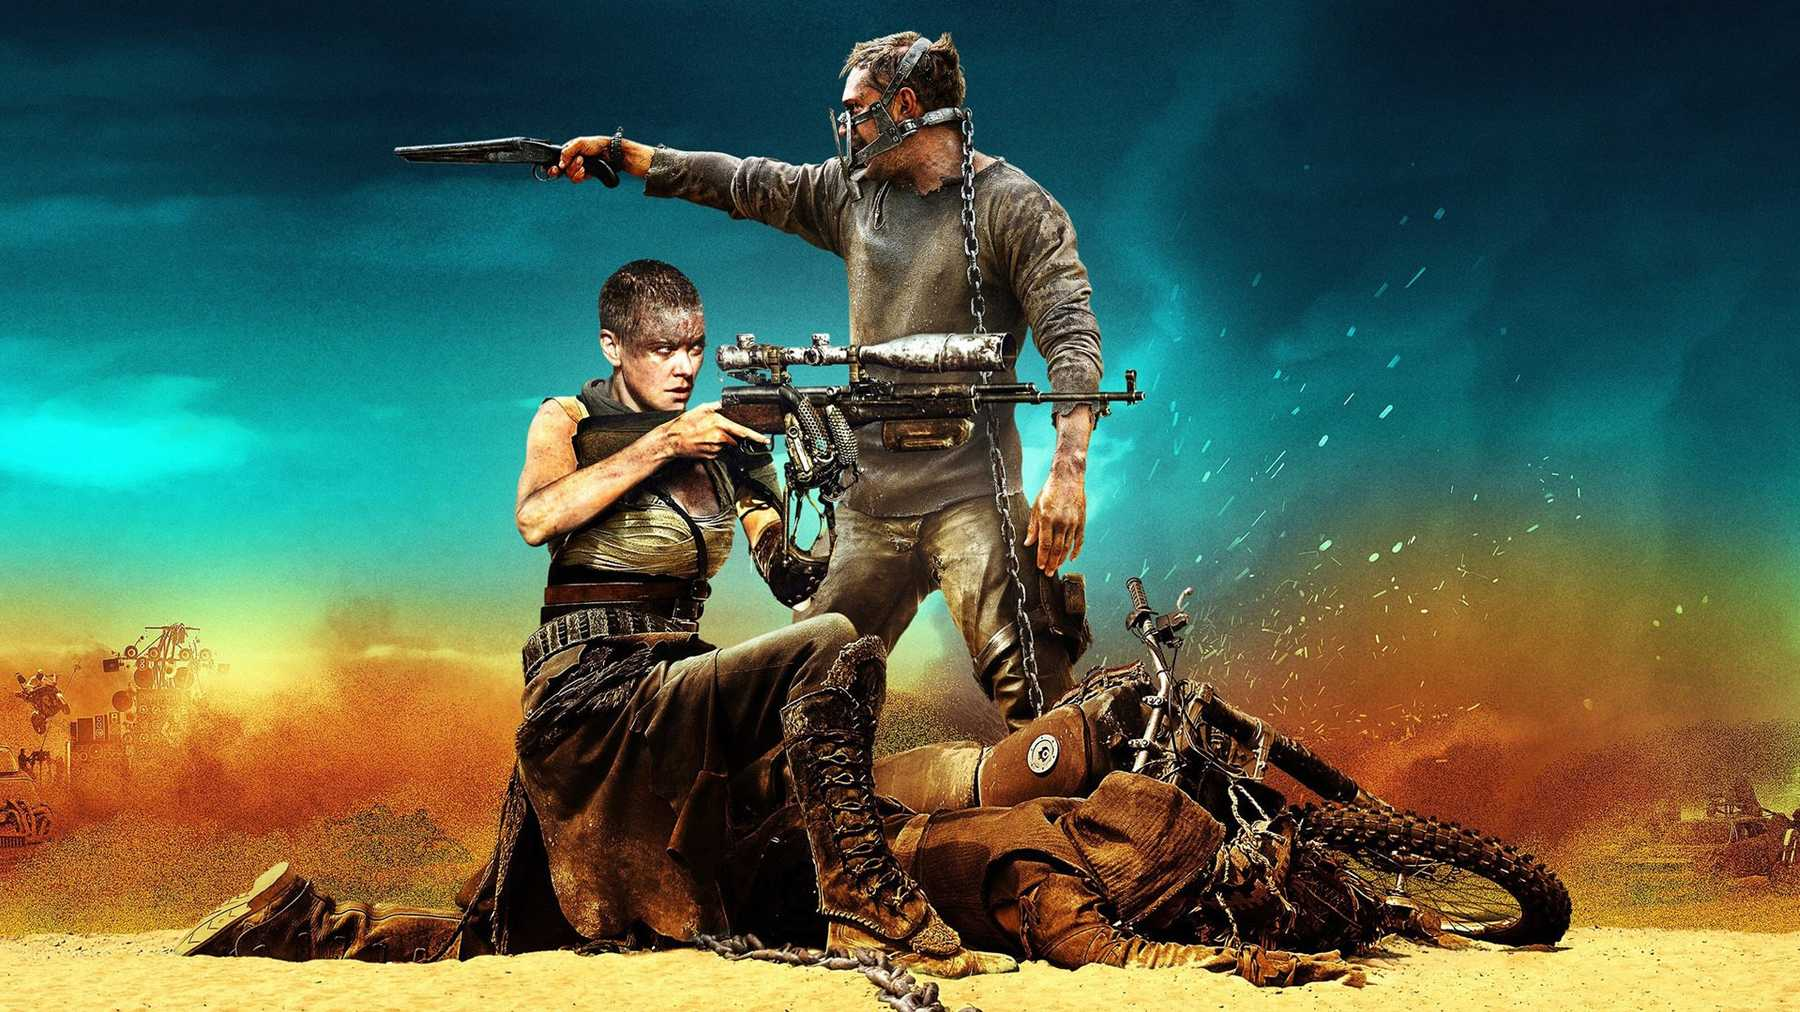 Mad Max Fury Road Sequel New Trailer Leaks, Badass Villain, Spicy ...